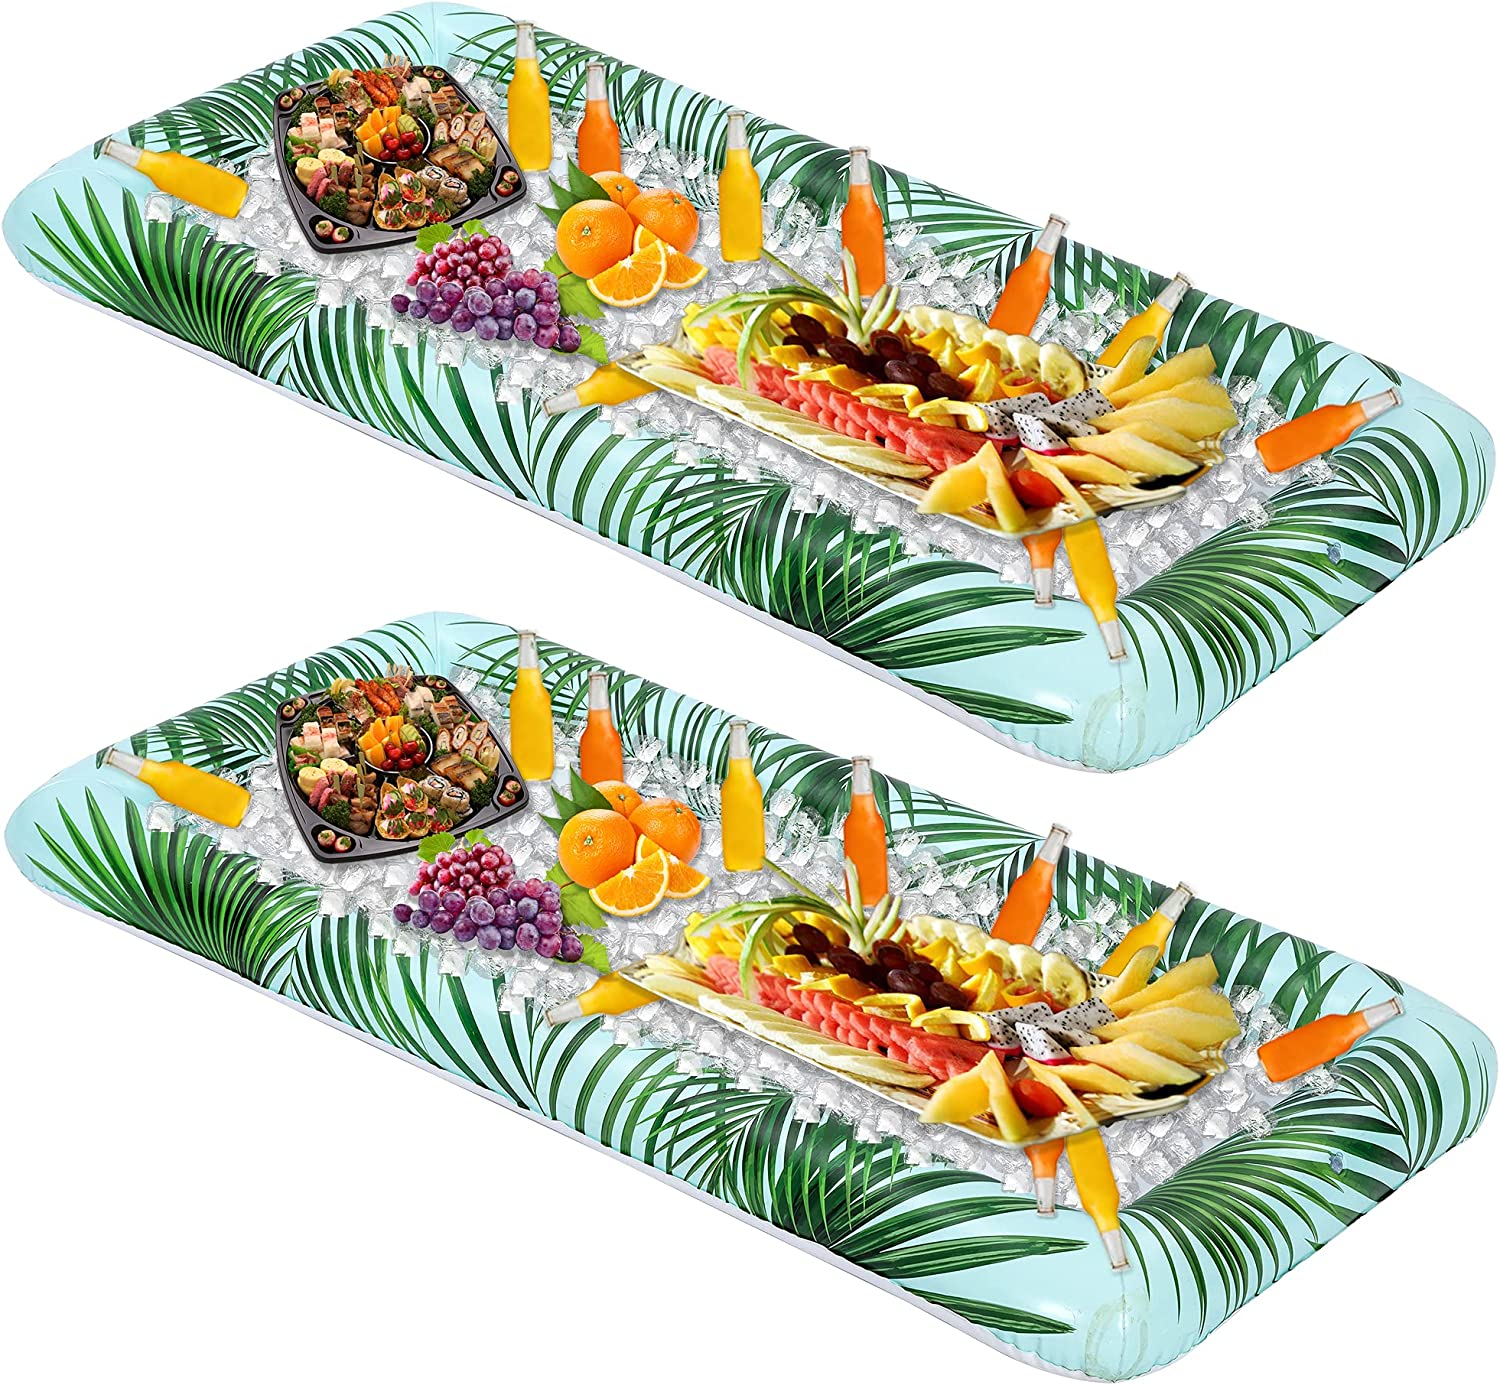 Inflatable Serving Bars with Drain Plug (2 Sets), Inflatable Cooler Ice Buffet Salad Serving Trays for Indoor Outdoor Summer Beach Luau Party, Picnic, and Pool Party